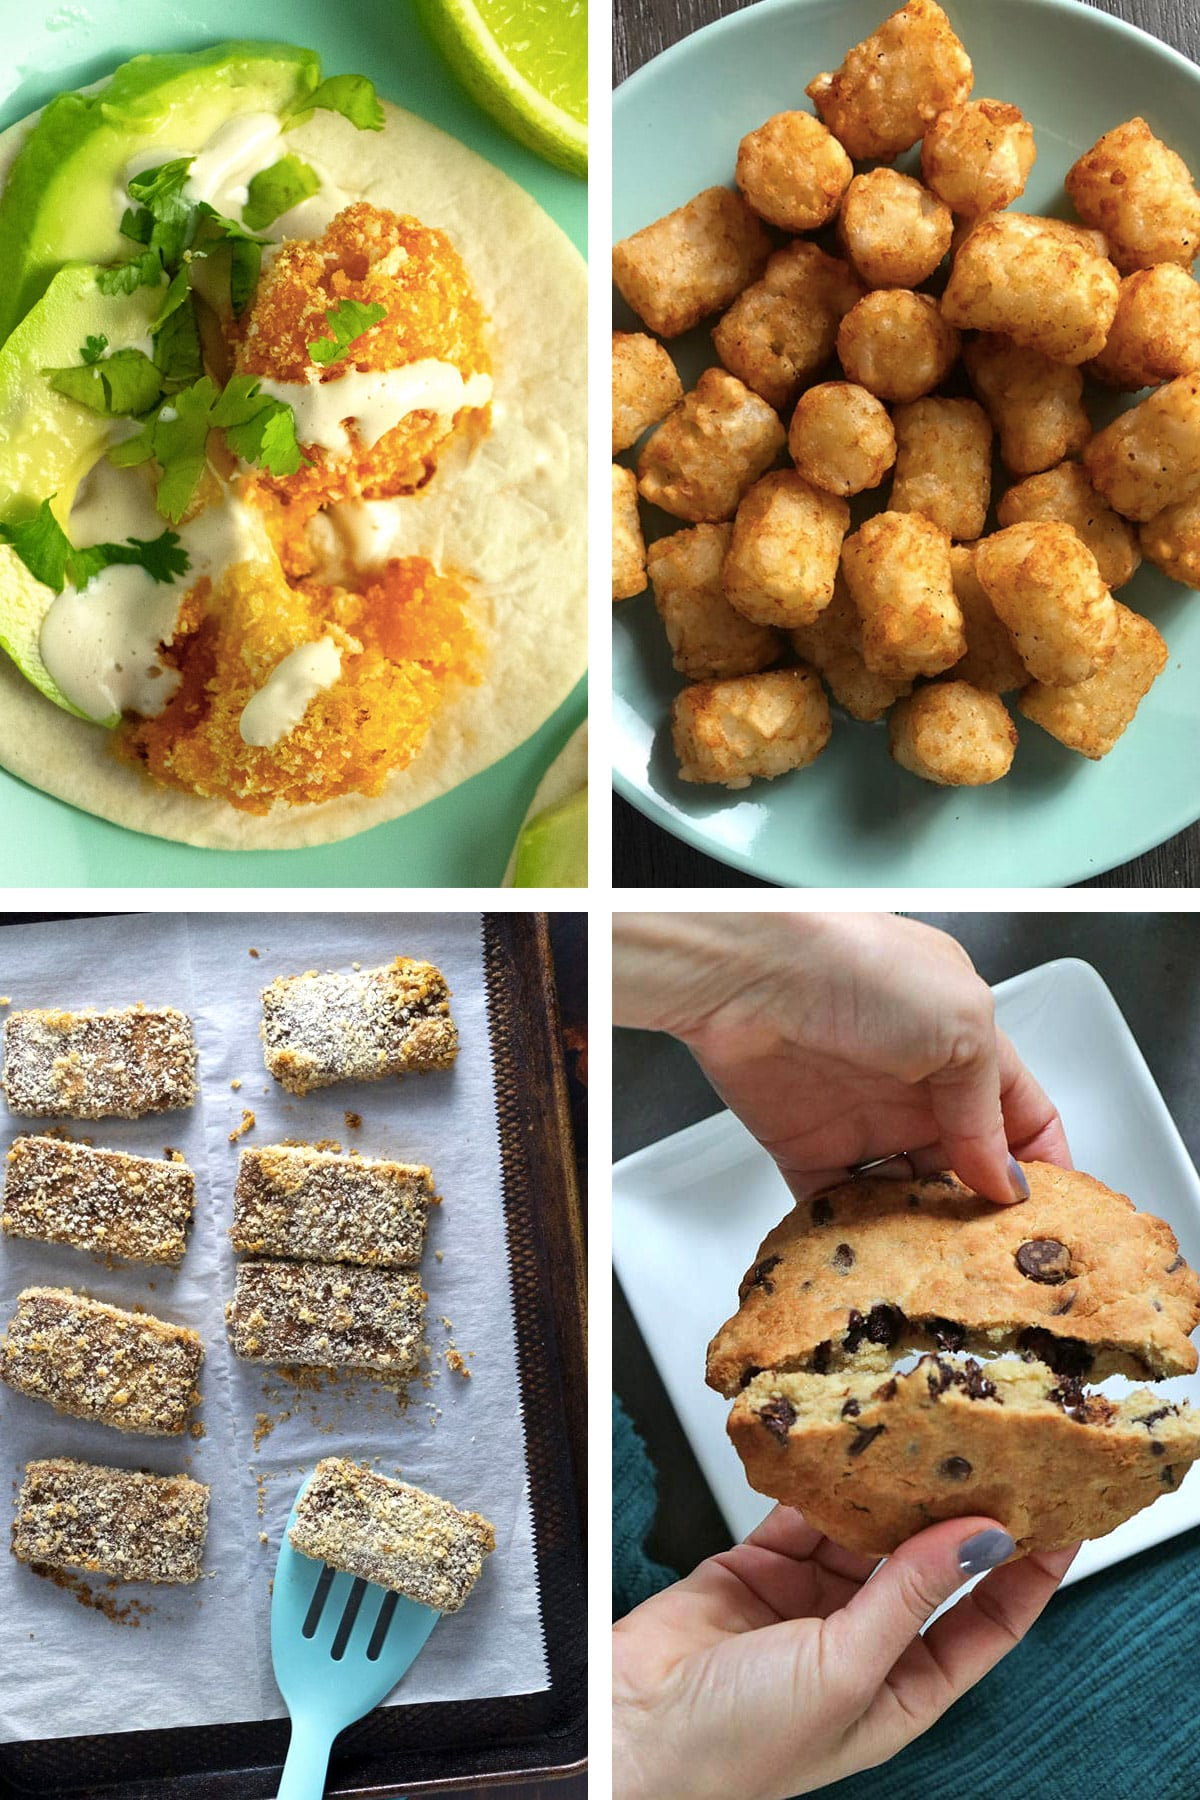 image collage of vegan air fryer recipes: cauliflower tacos, tater tots, crunchy tofu, chocolate chip cookie